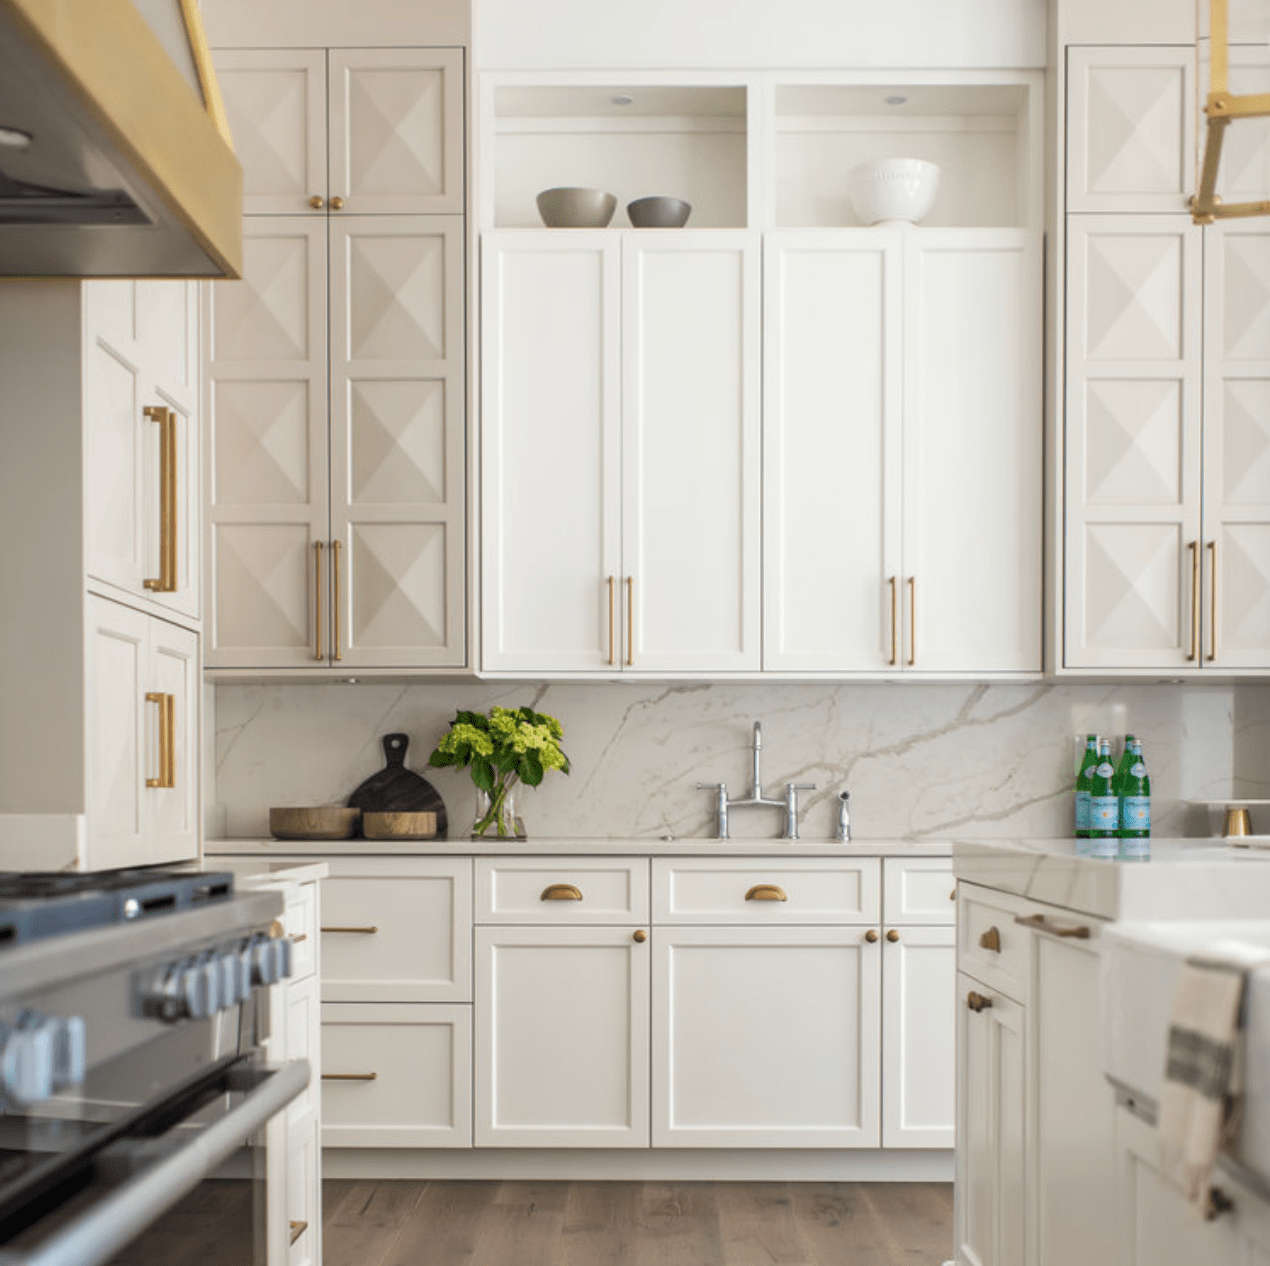 The Trendiest Kitchen Colors For 2019 Are Definitely Not: Exciting Kitchen Design Trends For 2018